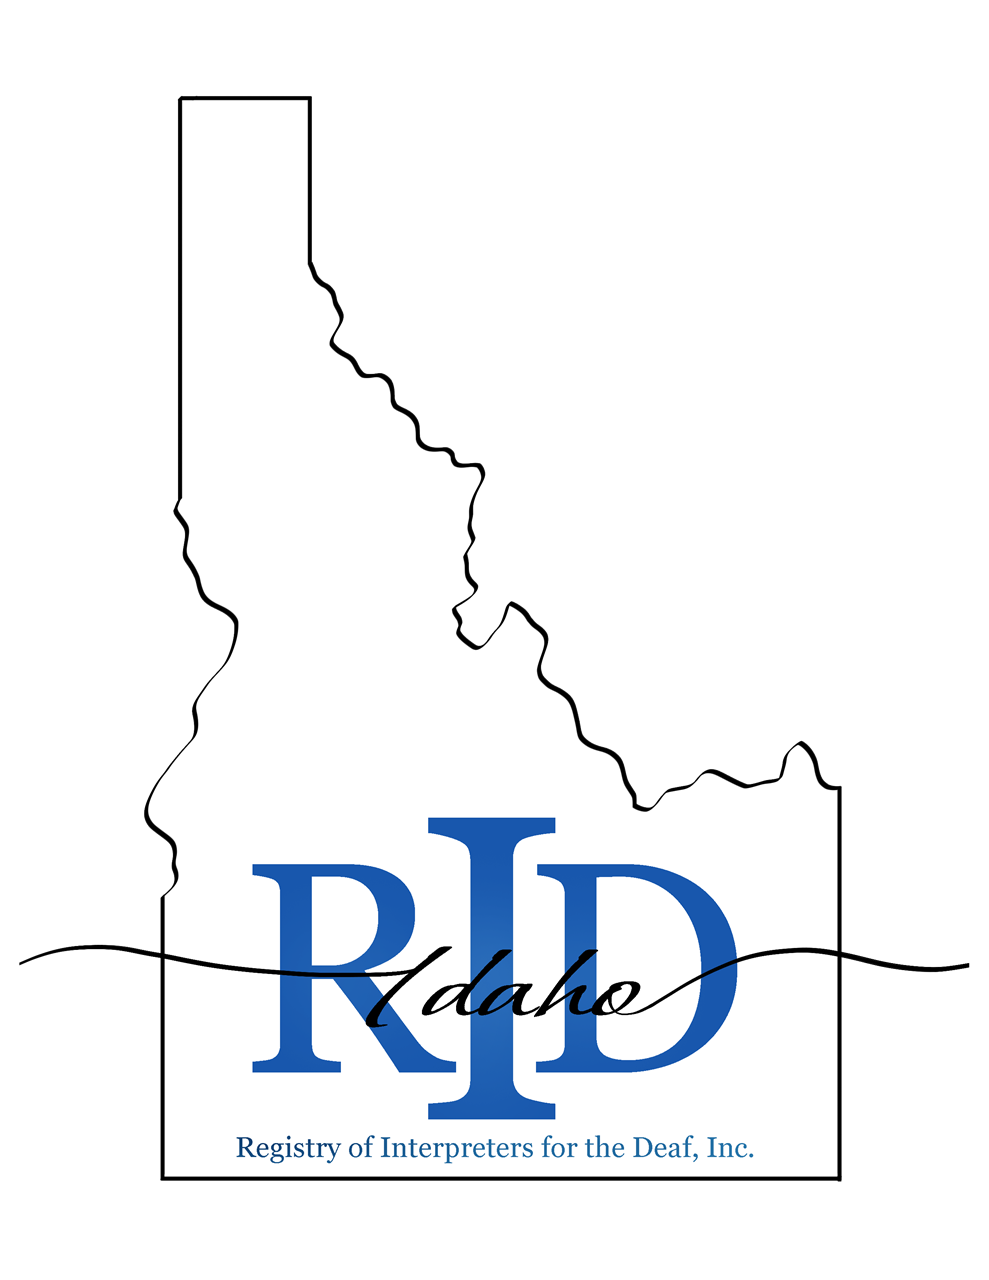 Idaho Registry of Interpreters for the Deaf logo